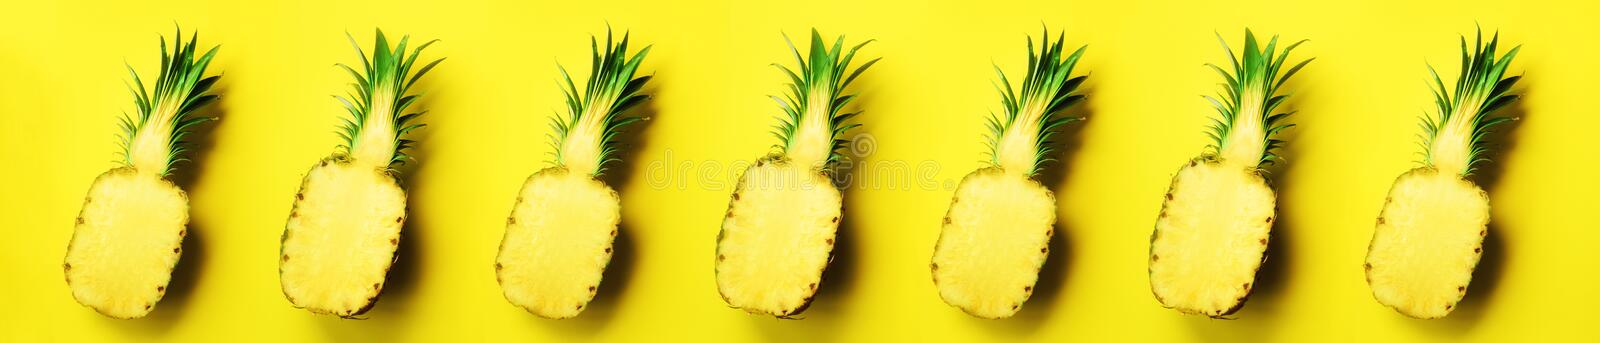 Bright pineapple pattern for minimal style. Top View. Pop art design, creative concept. Copy Space. Fresh pineapples on royalty free stock image